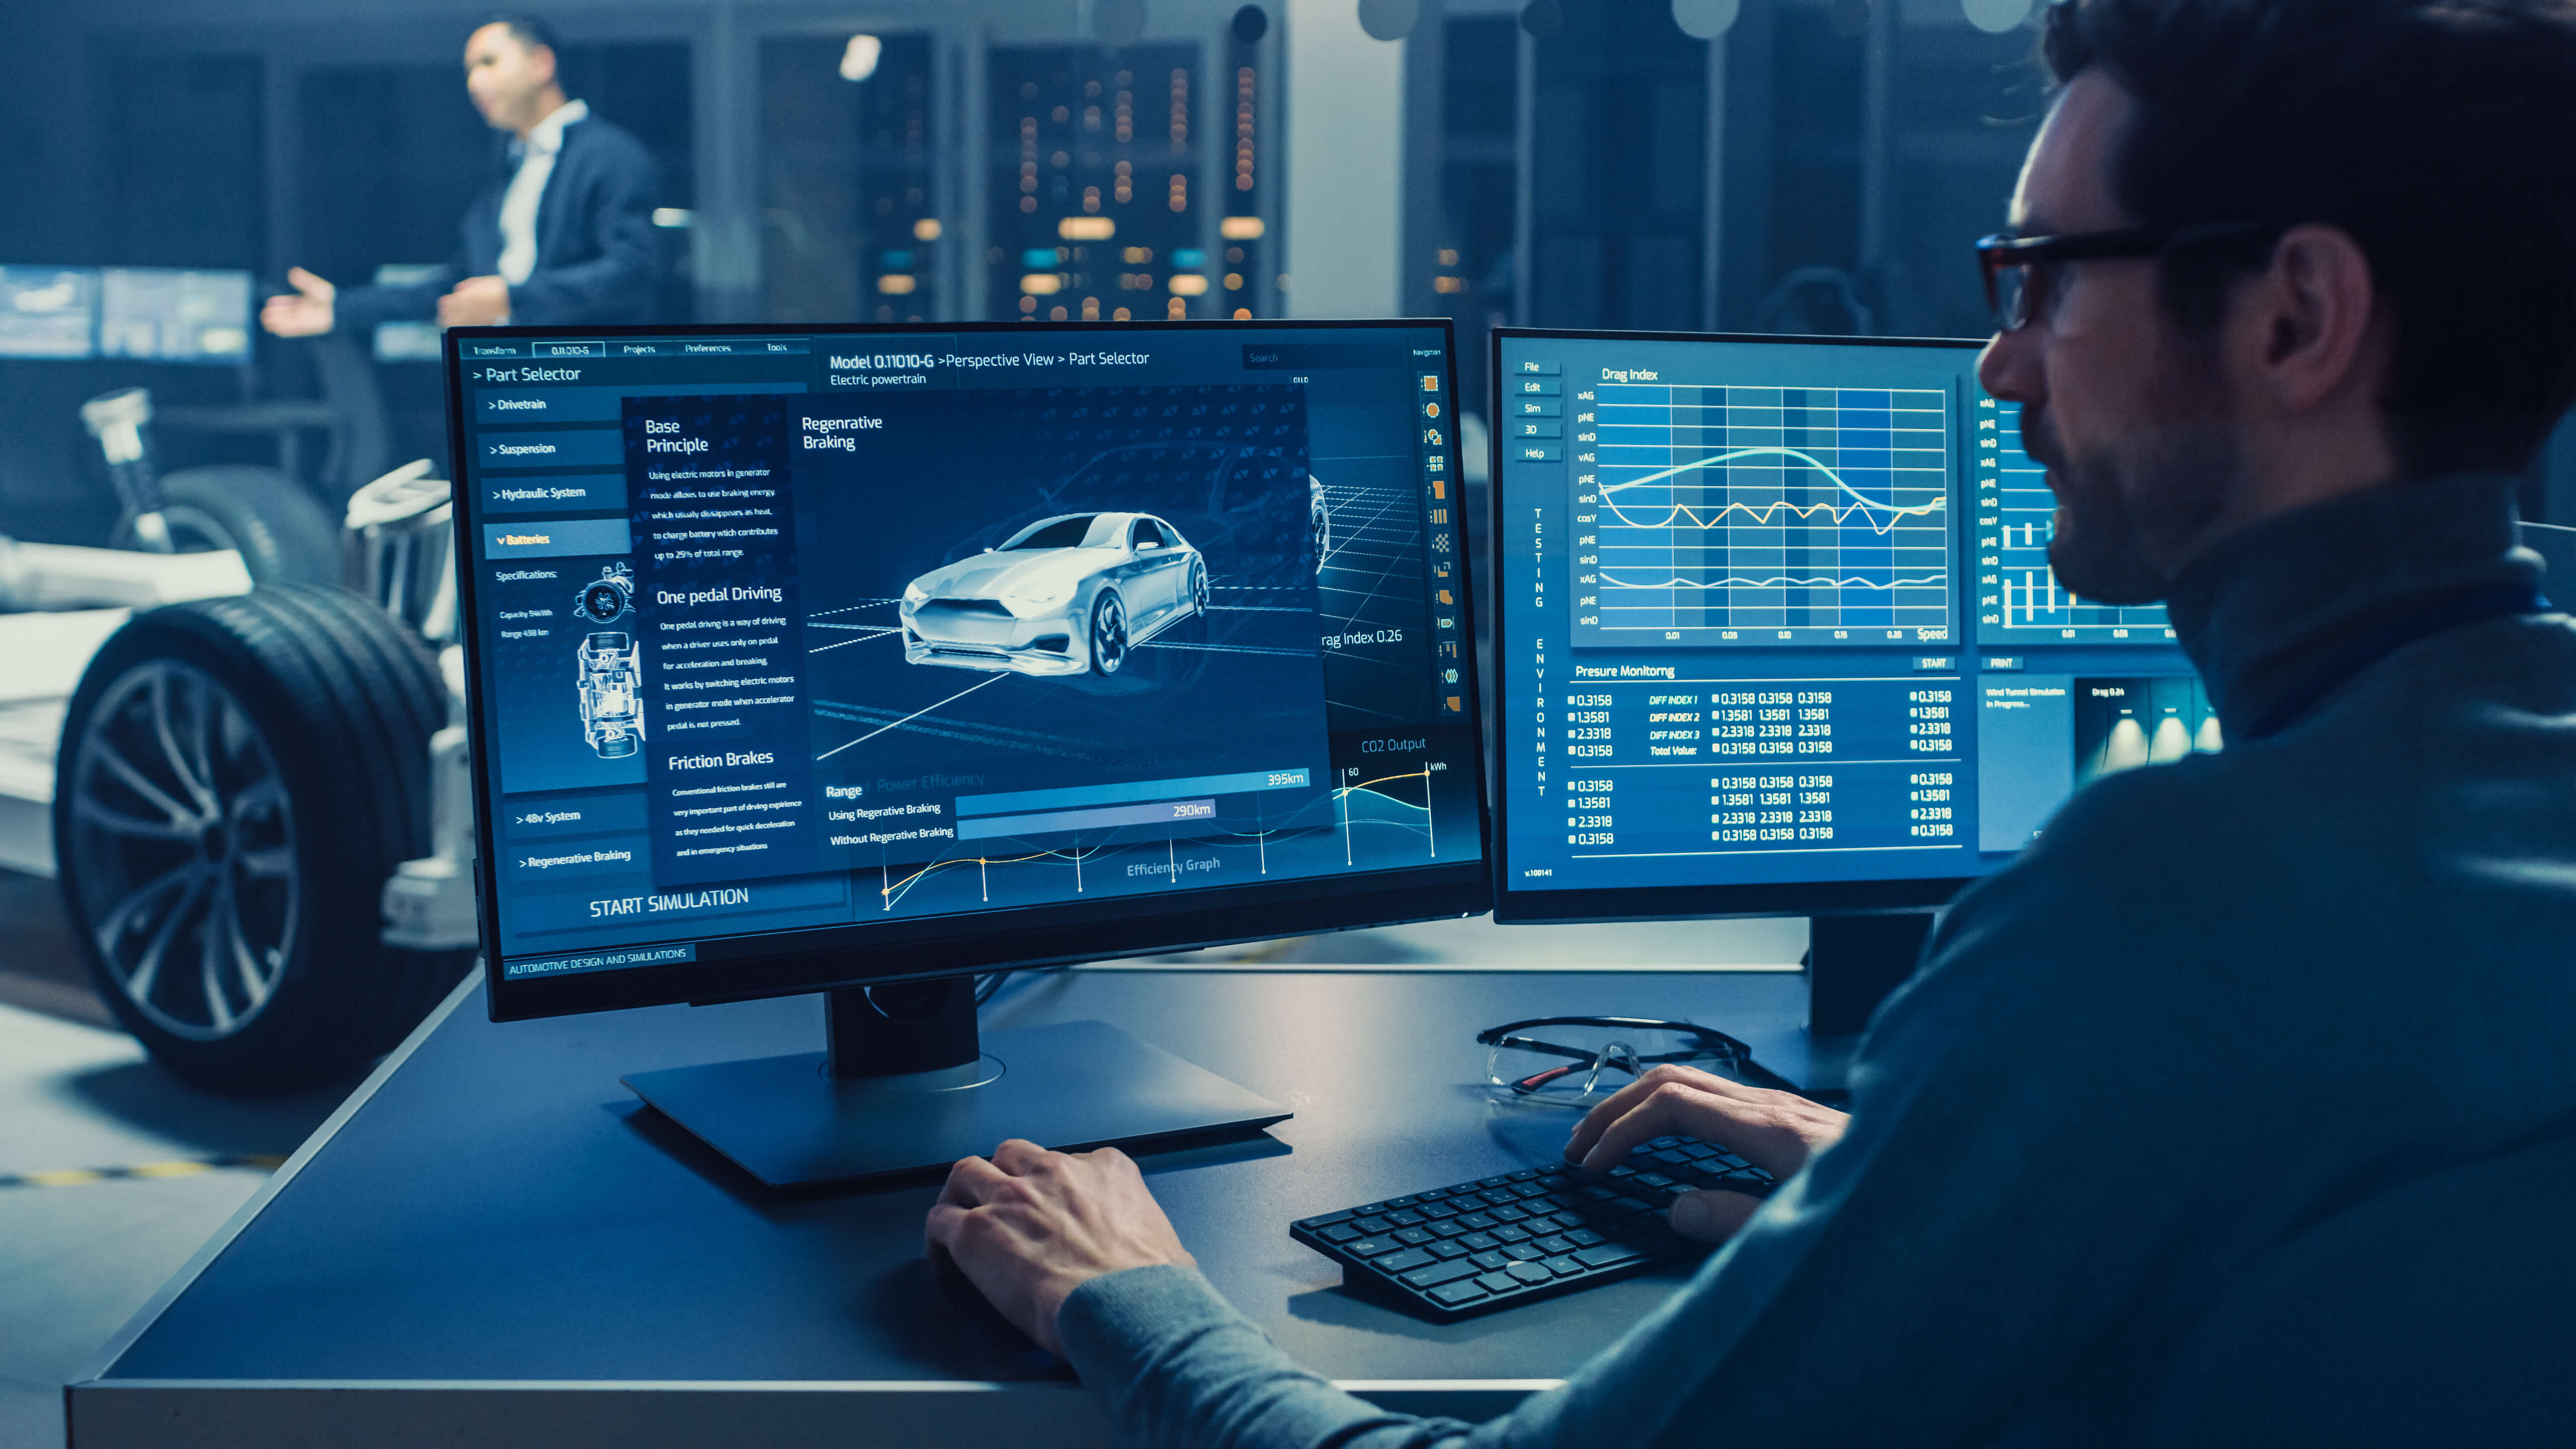 person working at computer with UI interface of vehicle information